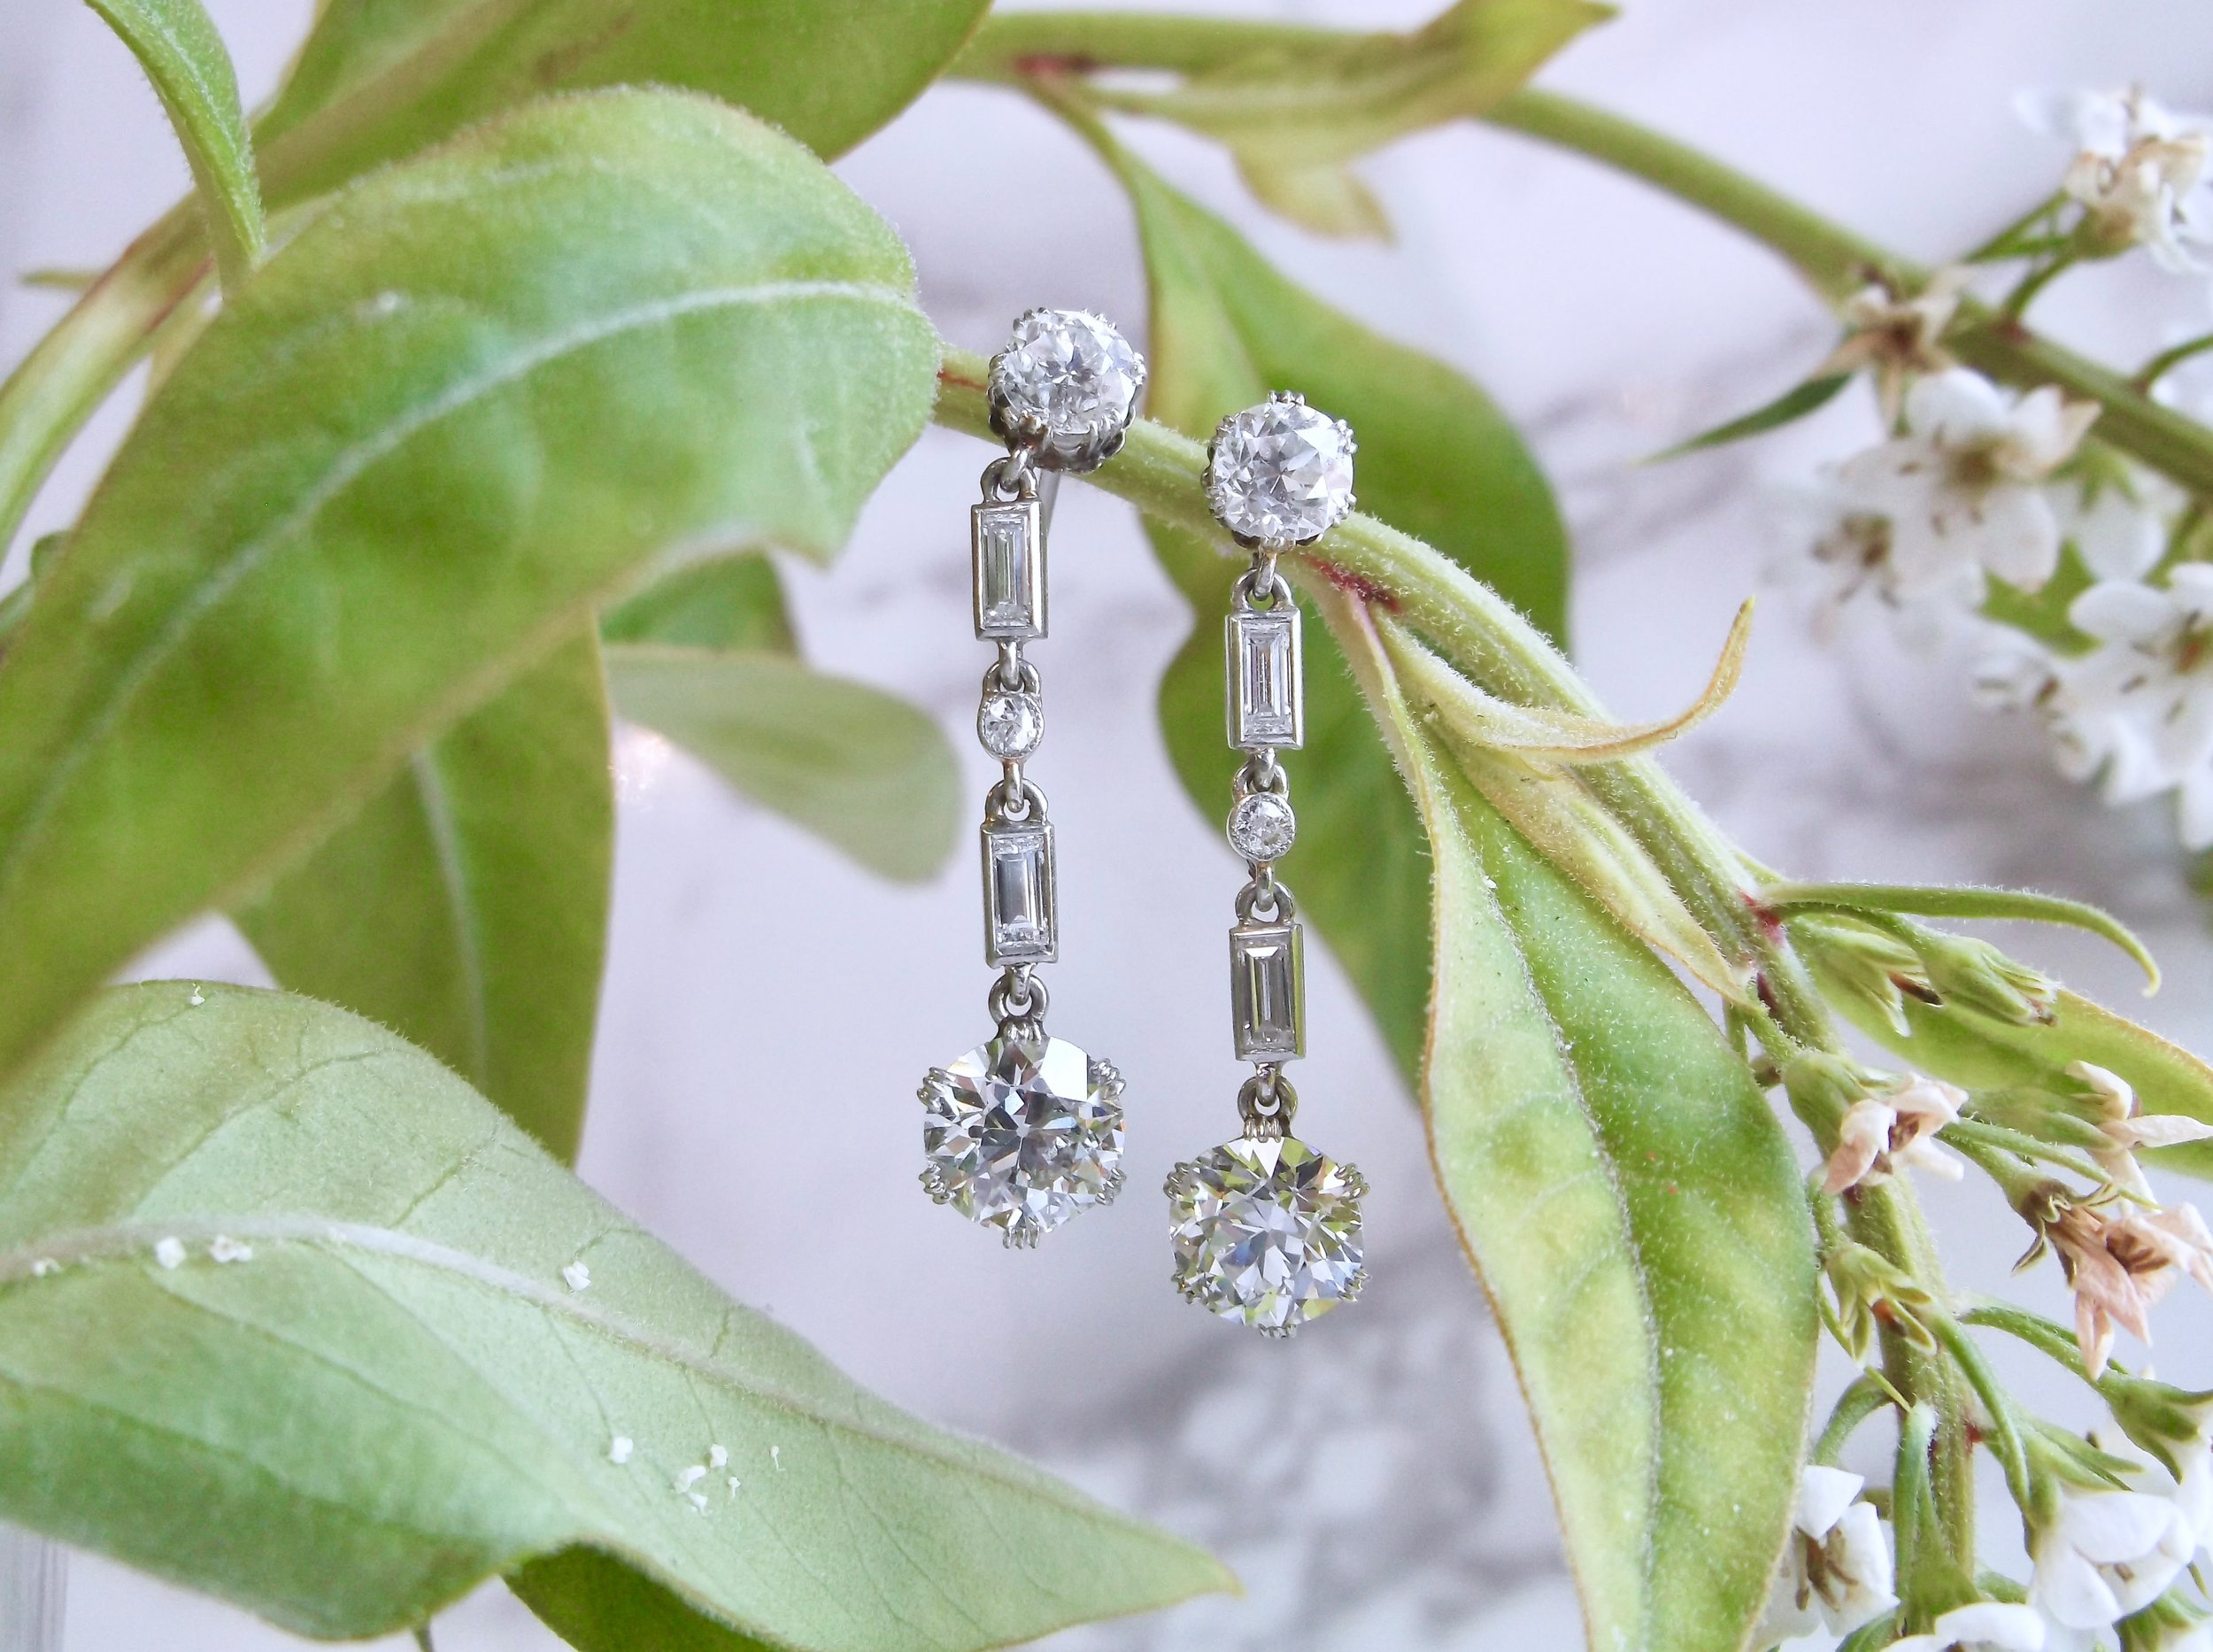 When you need a bit more bling than a classic stud, these fabulous Art Deco diamond drops are sure to fit the bill! These beauties feature over 3 carats in diamonds set in platinum.  Shop them  HERE .